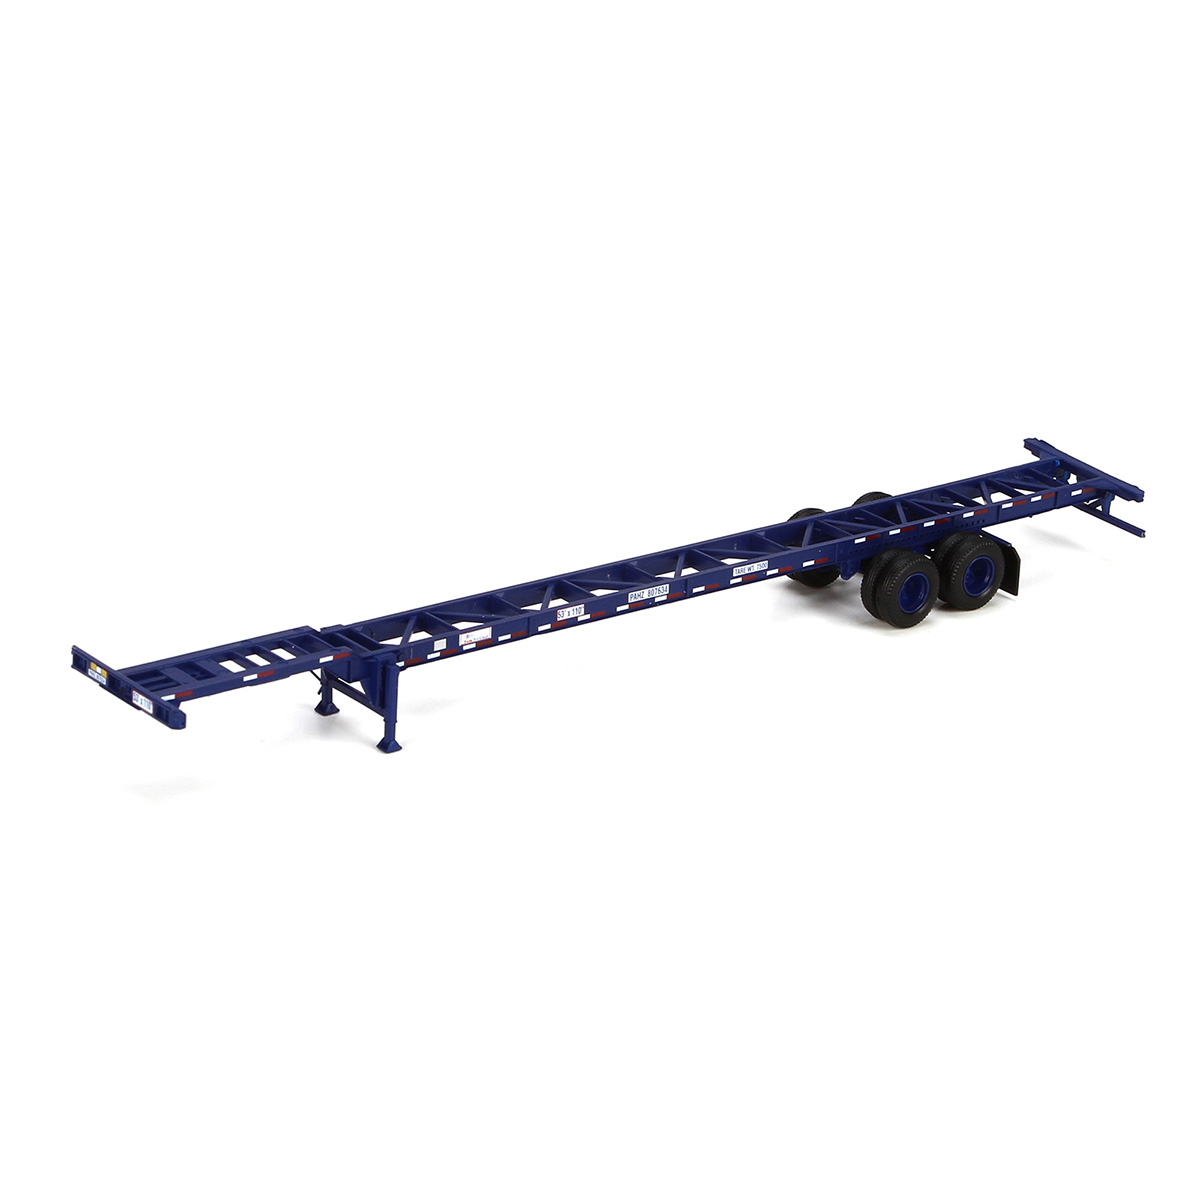 Athearn Ready To Roll ATH26594 HO 53' Container Chassis 2 Pack, Pacer